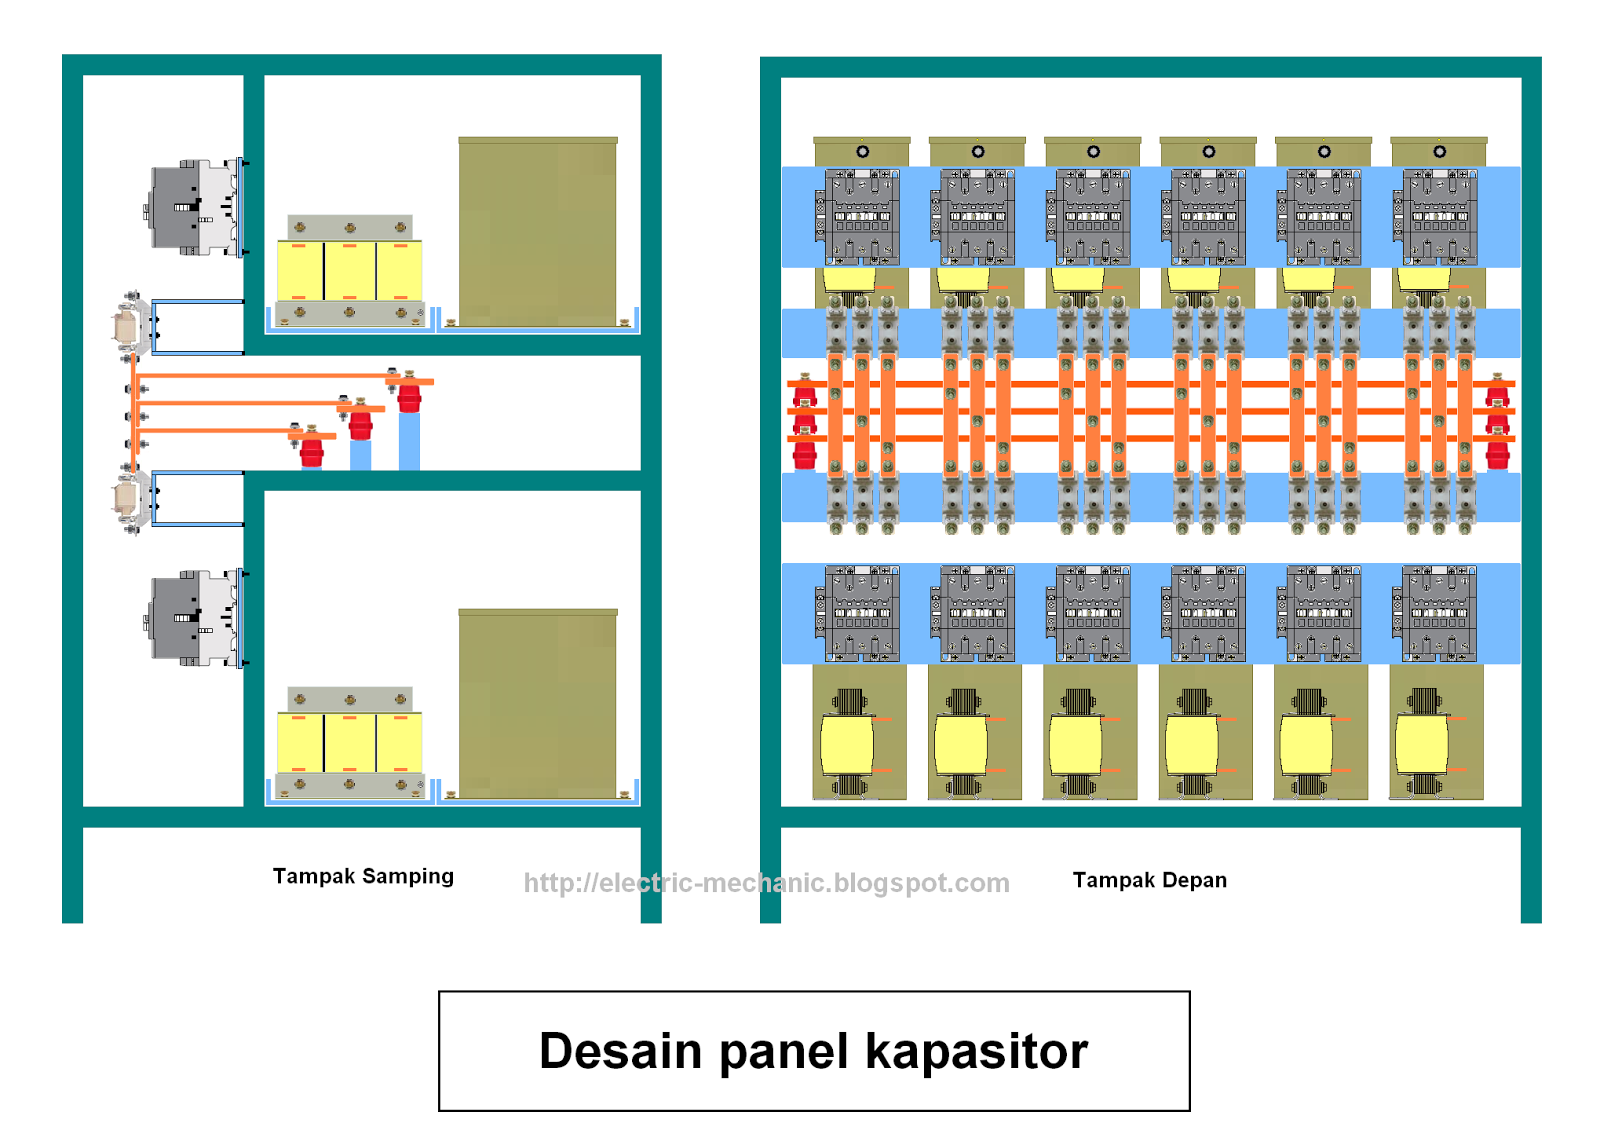 Hpm Switch Wiring Diagram 2003 Nissan Sentra Stereo Instalasi Listrik Industri Electrical Diagrams ~ Odicis